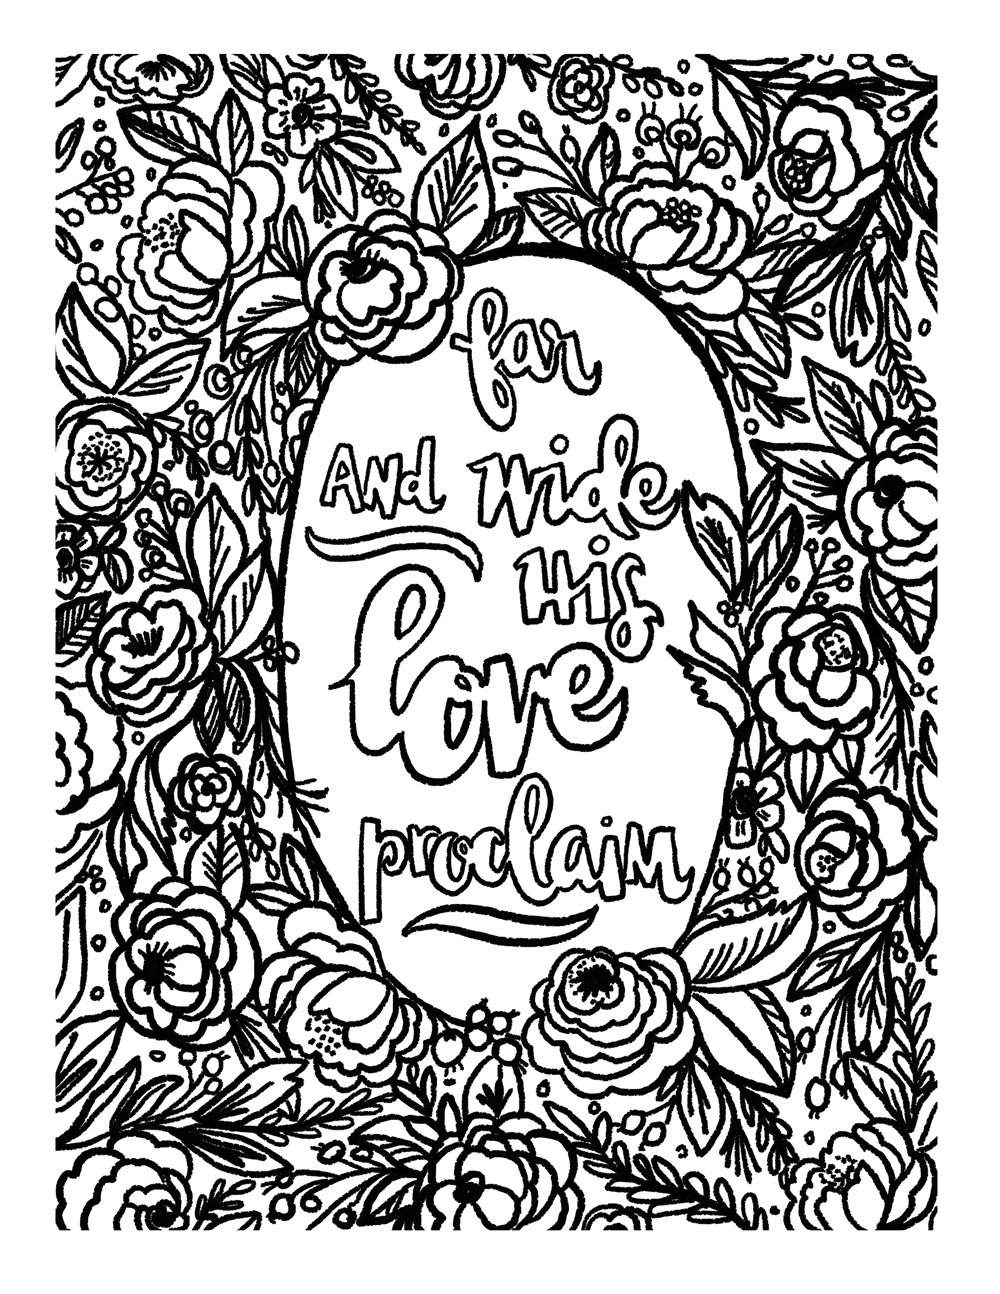 Coloring pages for missionaries - Fun Ways To Get The Family Involved With Family History And Missionary Ancestors